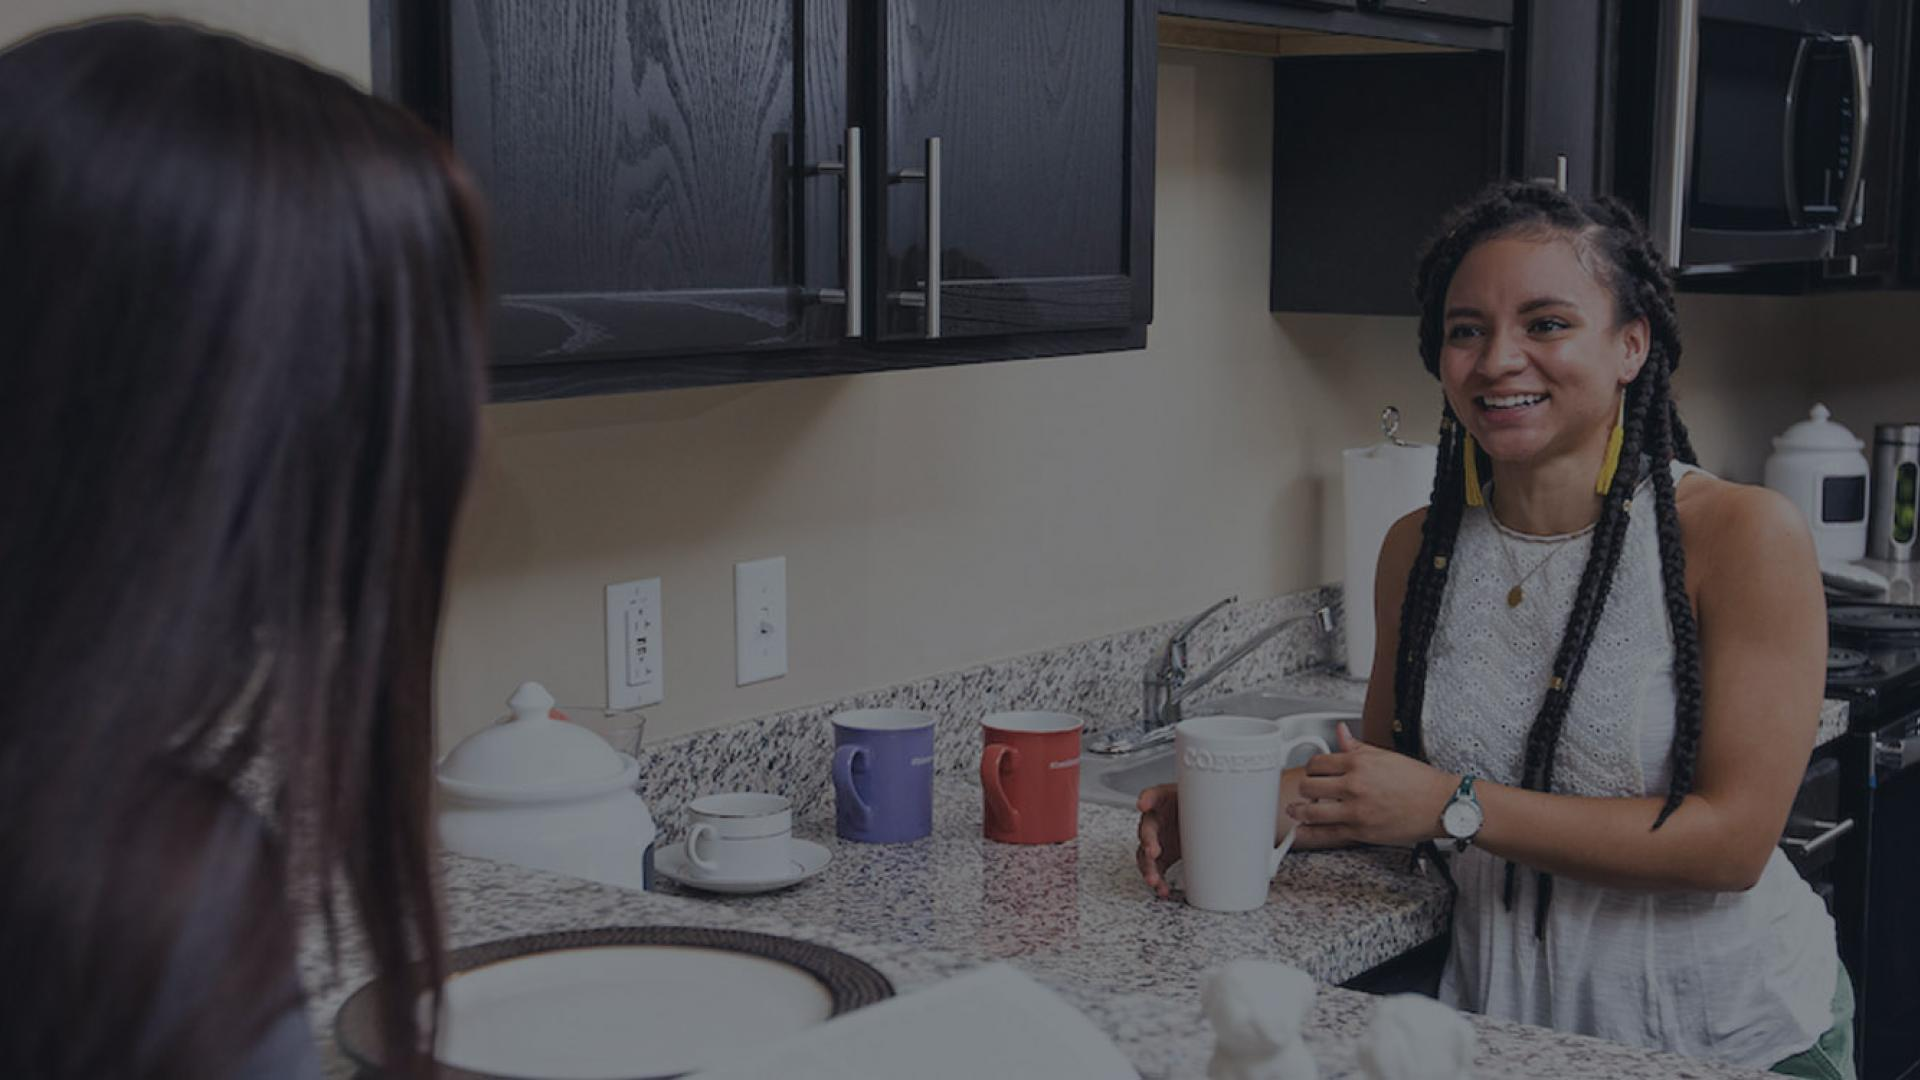 Two female students talking at the kitchen counter of their residence